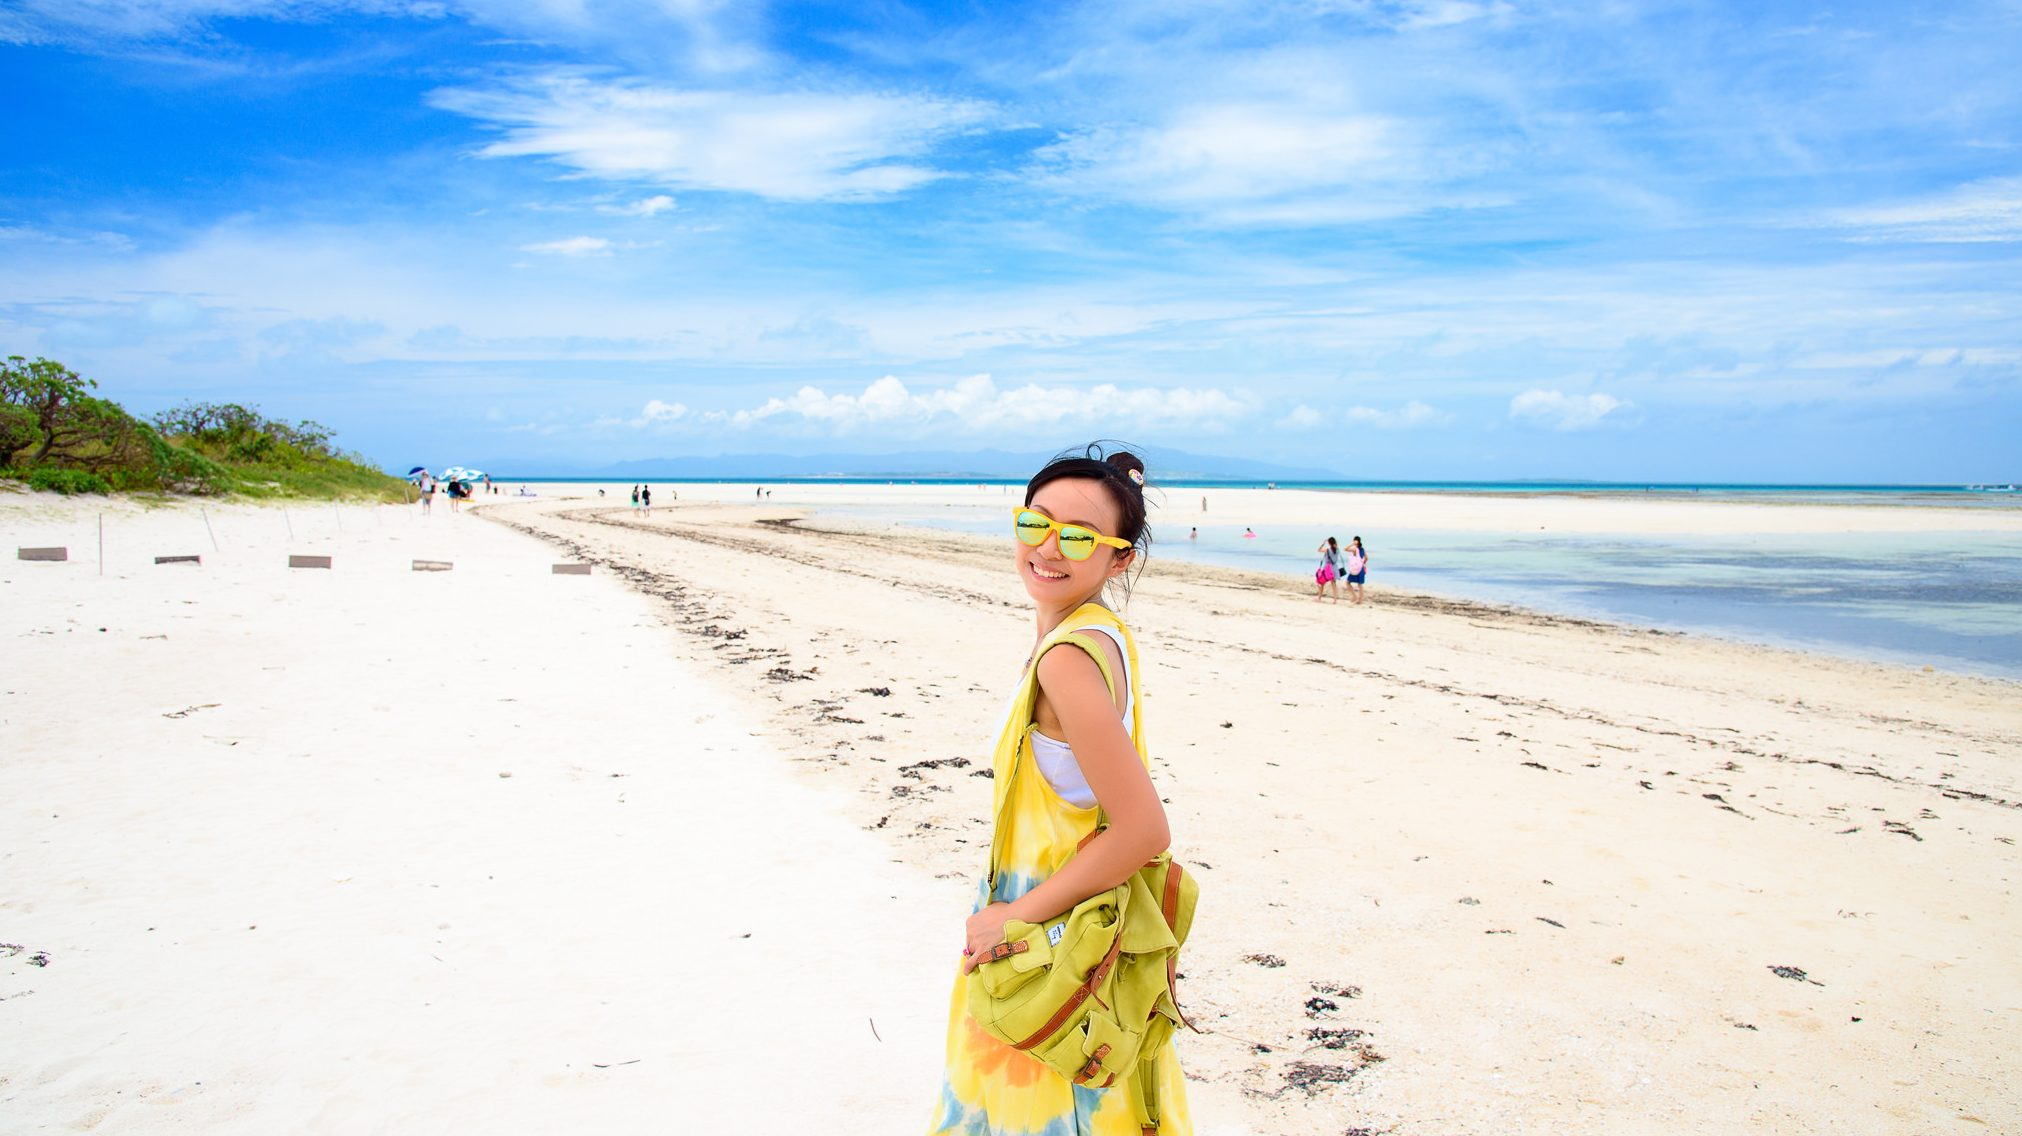 The Okinawa beach is one of the best beaches in Japan.